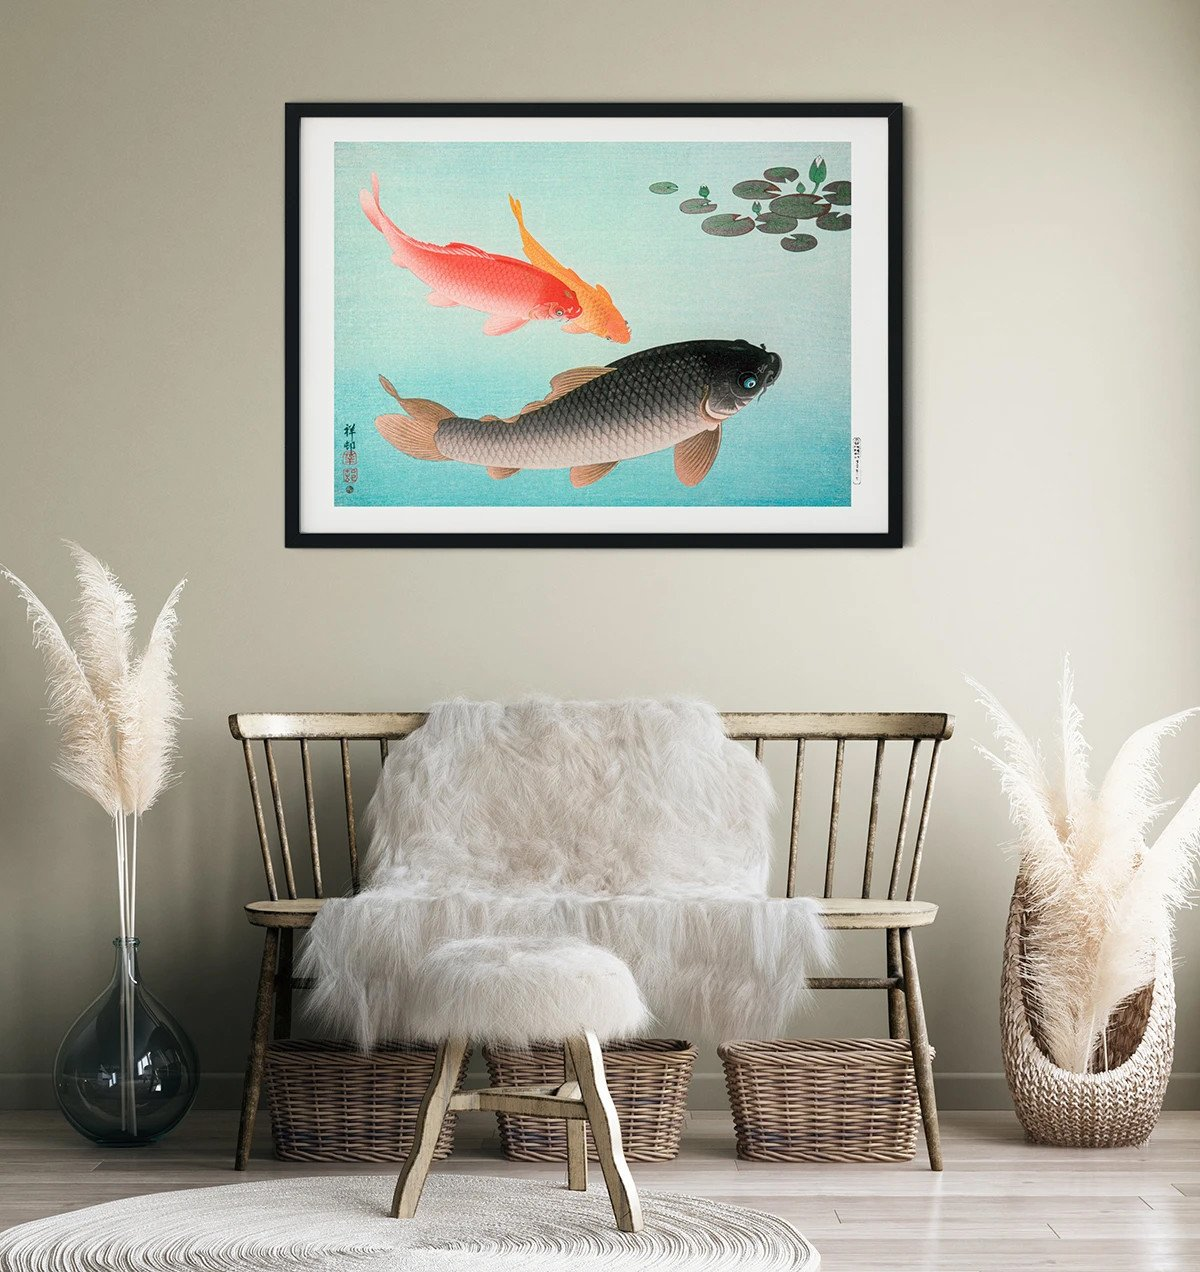 Common and Golden Carp Poster 60x42 by O. Koson - 505017 - photo